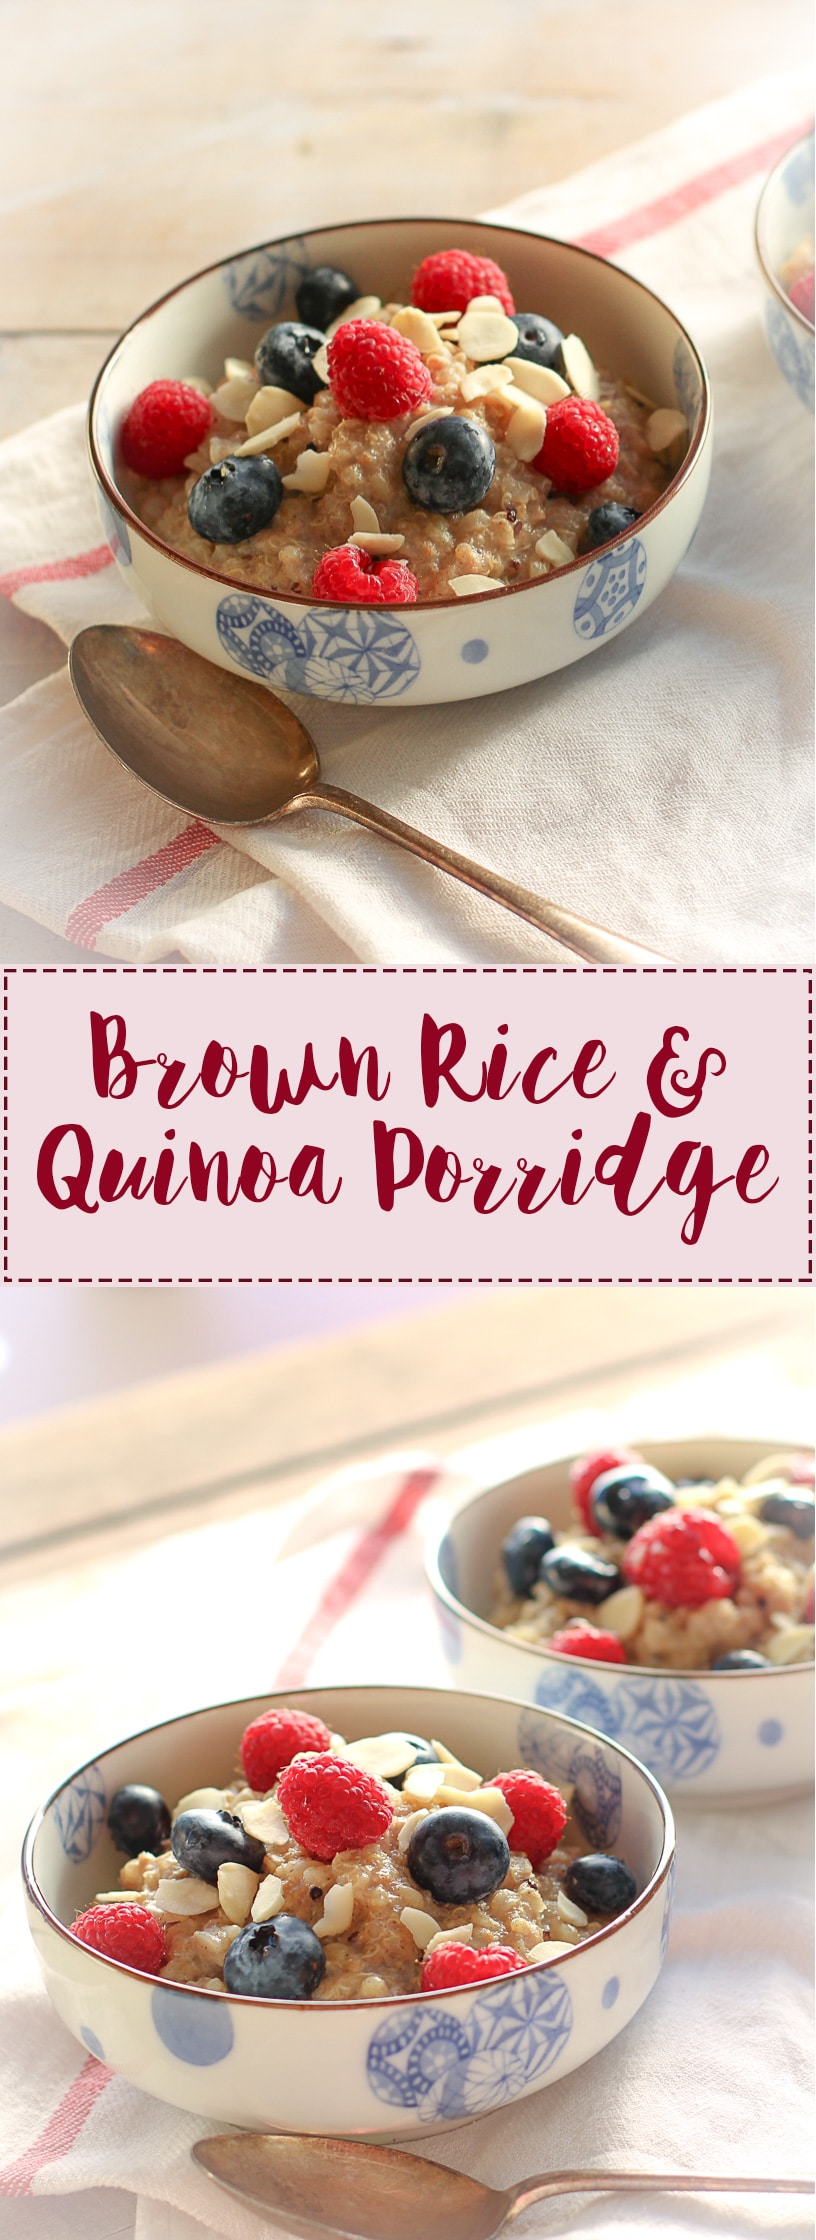 Brown-Rice-&-Quinoa-porridge-pinterest-2